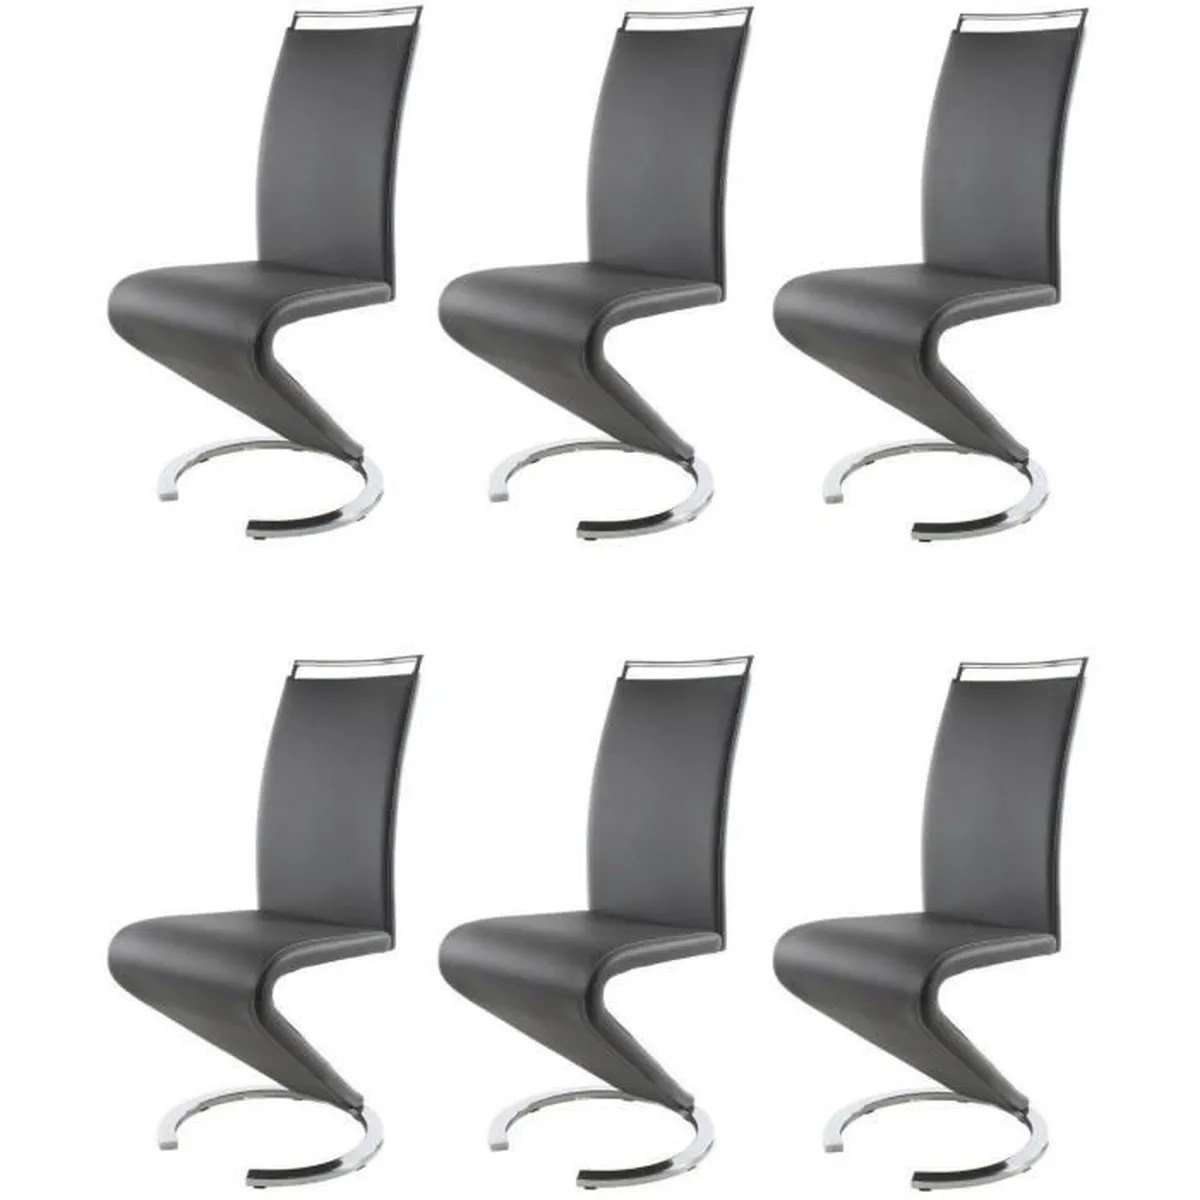 Chaise De Salon Sidney Lot De 6 Chaises Salon Gris Achat Vente Chaise Cdiscount